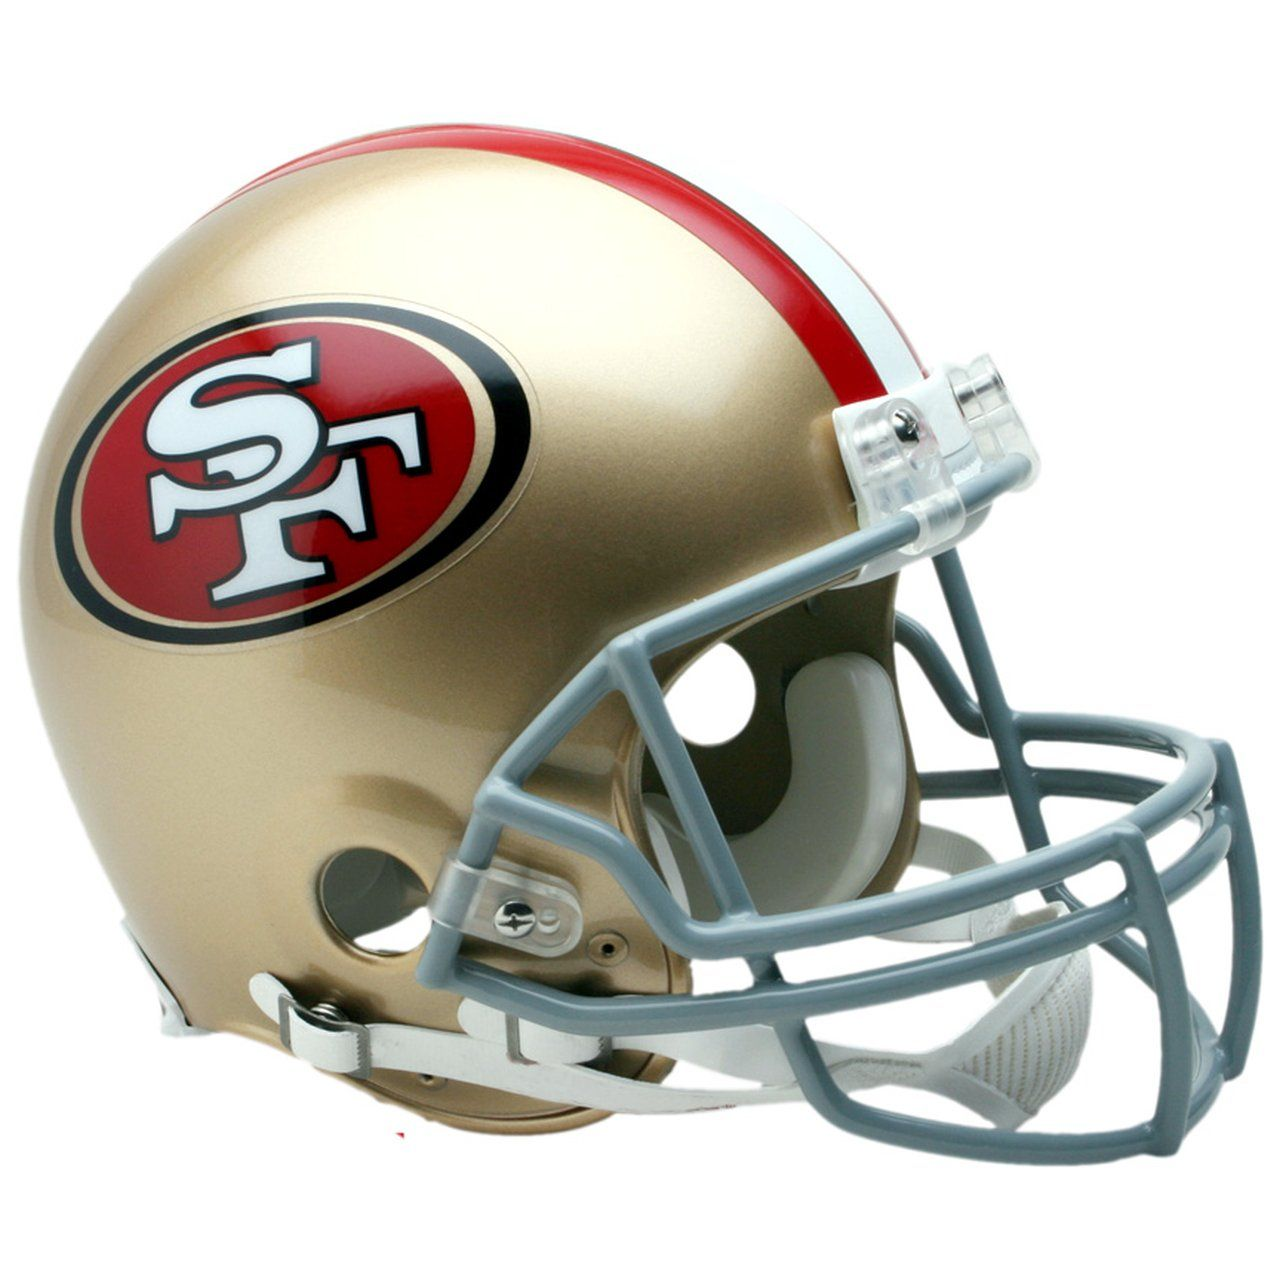 amfoo - Riddell VSR4 Authentic Football Helm - San Francisco 49ers